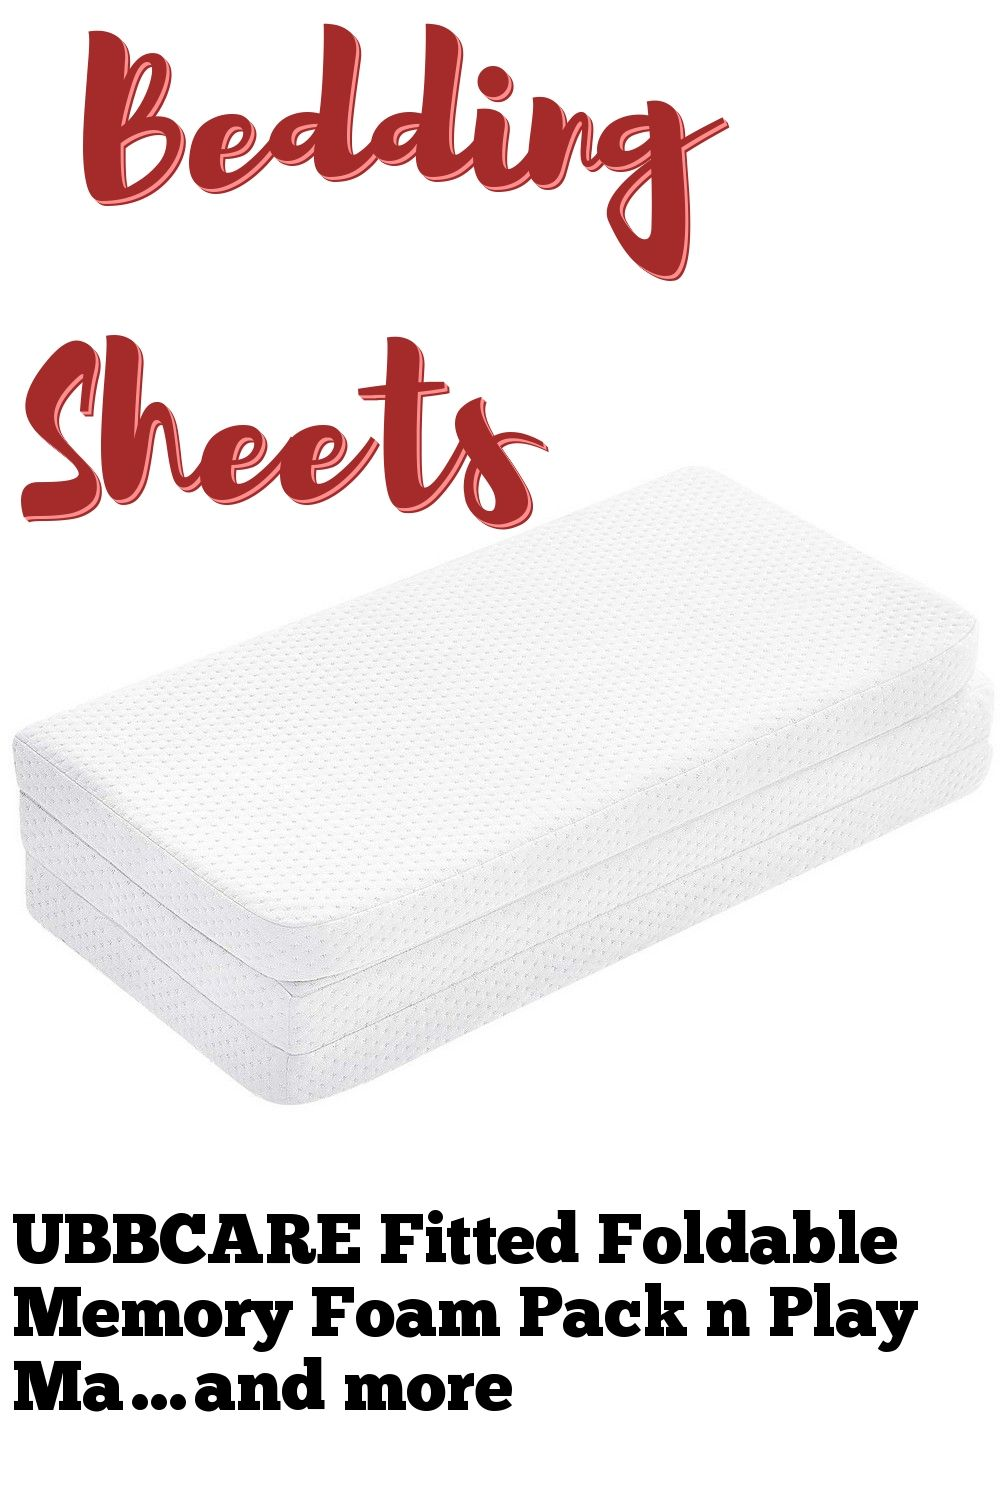 Ubbcare Fitted Foldable Memory Foam Pack N Play Mattress Pad Portable Playard Mattresses 38x26x1 Pack N Play Mattress Mattress Pad Washable Cover